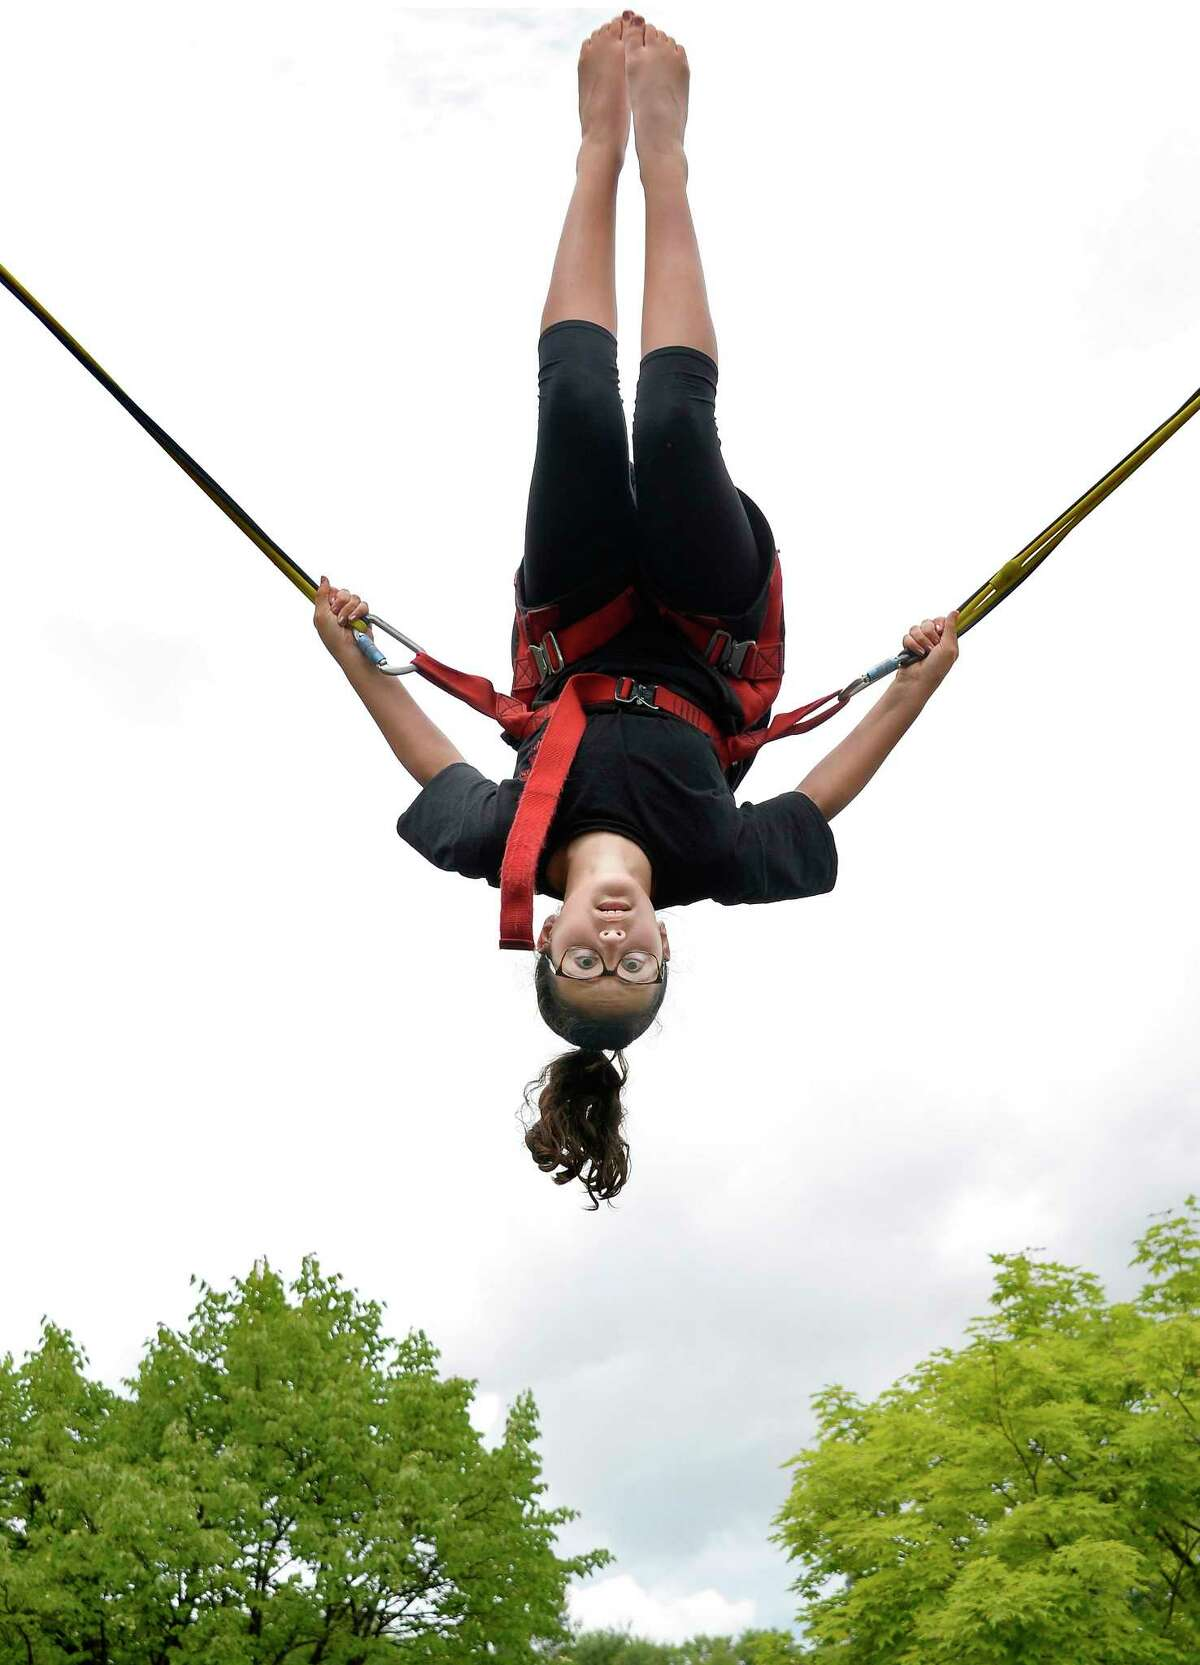 Ten-year-old Ali Palleschi of Rotterdam gets upside down on the Sky Launcher at FunPlex Action Park Thursday June 28, 2018 in East Greenbush, NY. (John Carl D'Annibale/Times Union)